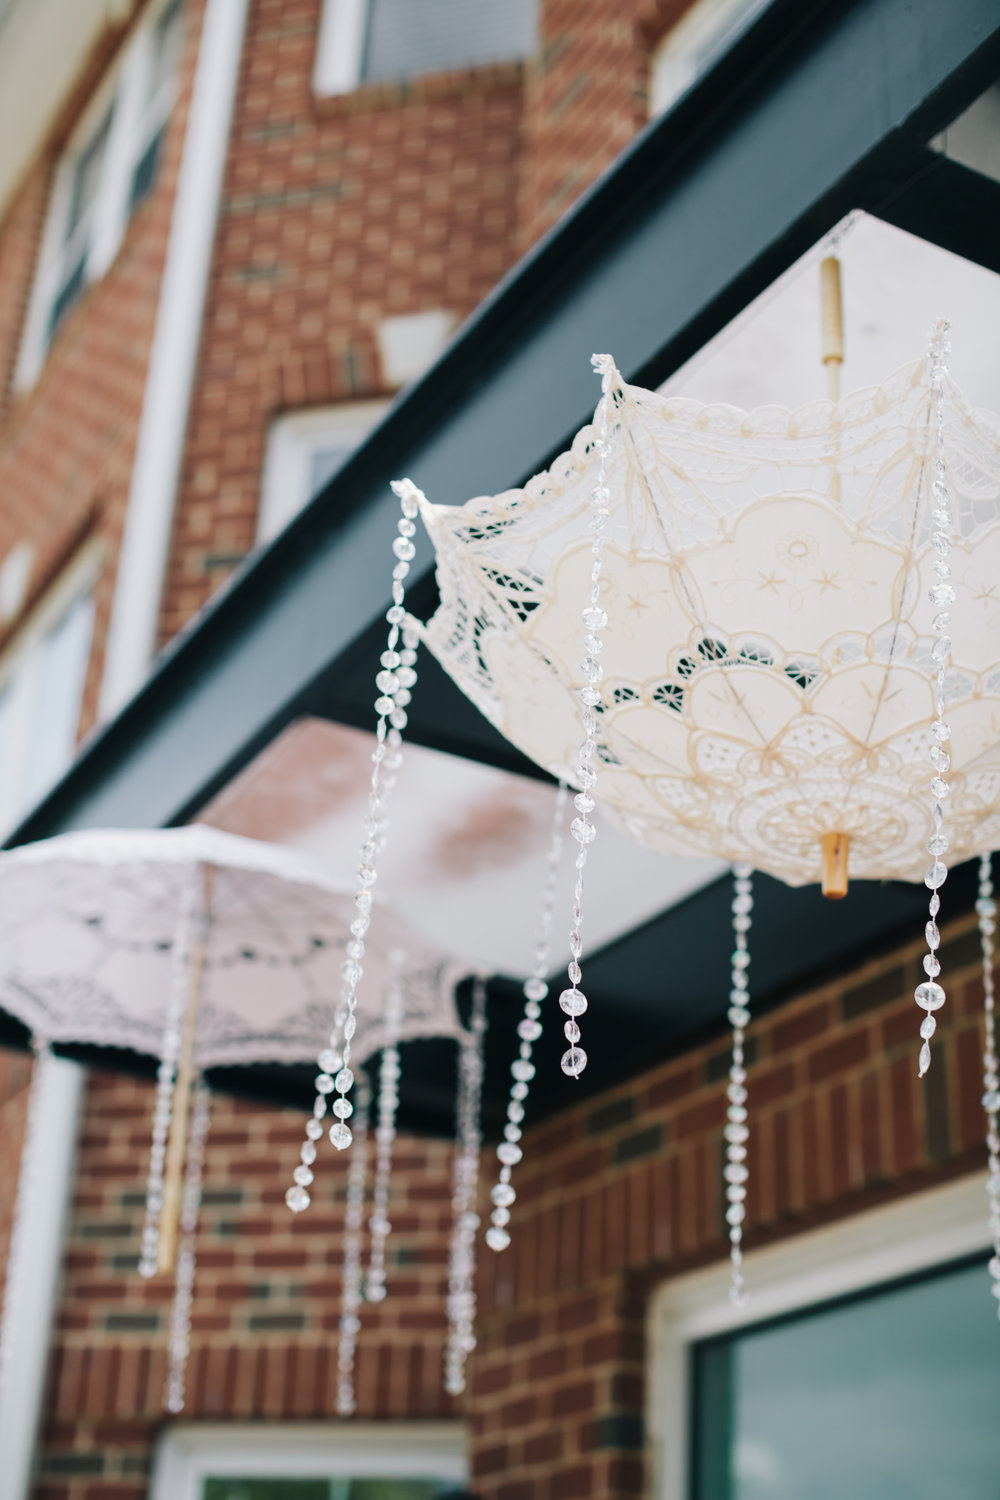 Lace parasols were hung above the entrance